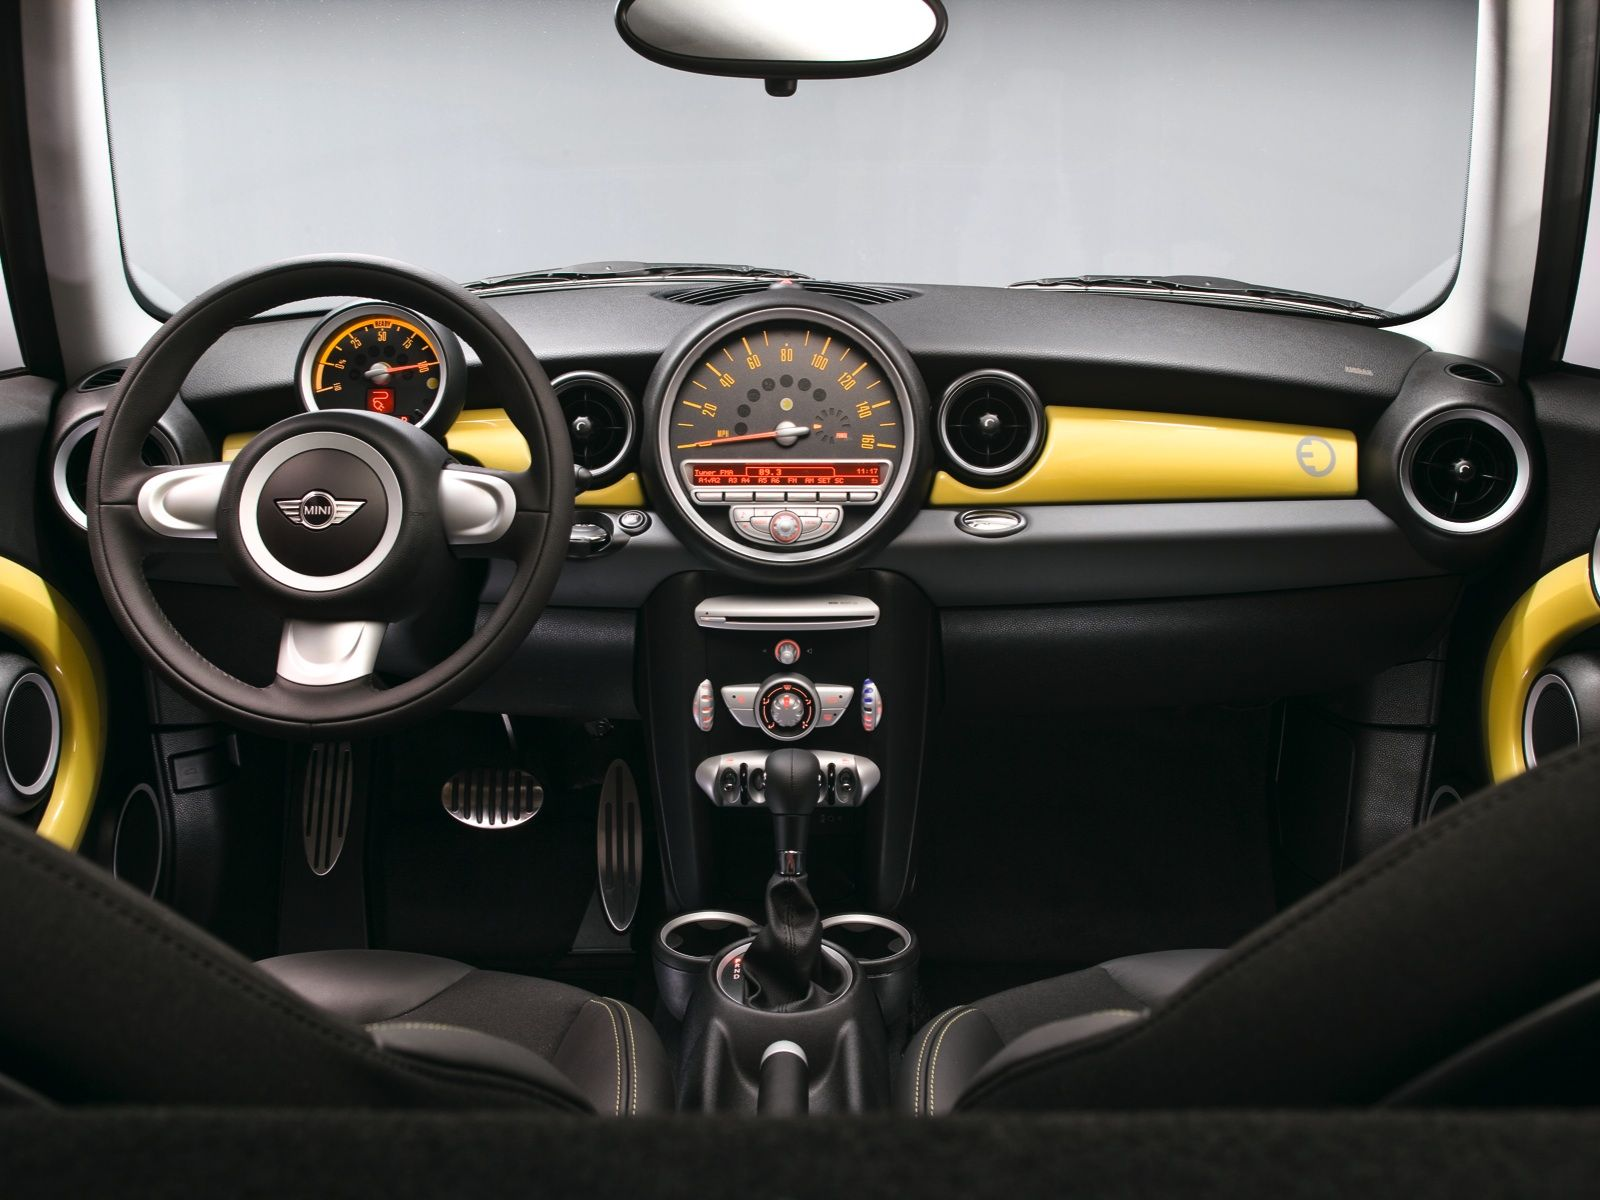 Charming Mini Cooper Images Interior   BMW Mini Cooper